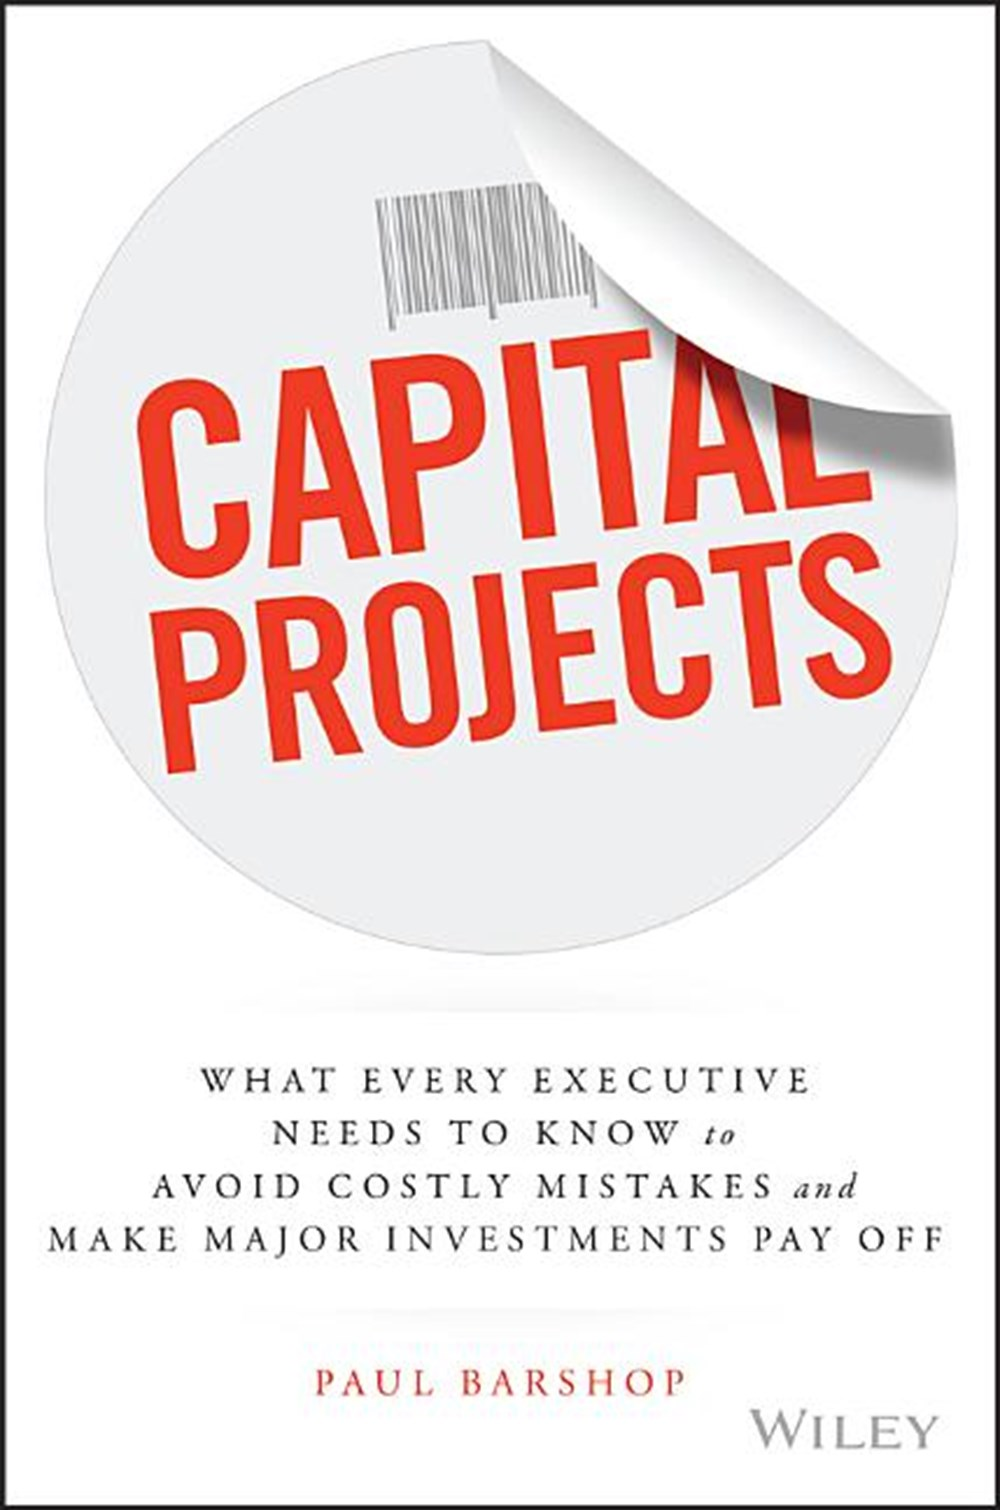 Capital Projects: What Every Executive Needs to Know to Avoid Costly Mistakes and Make Major Investm